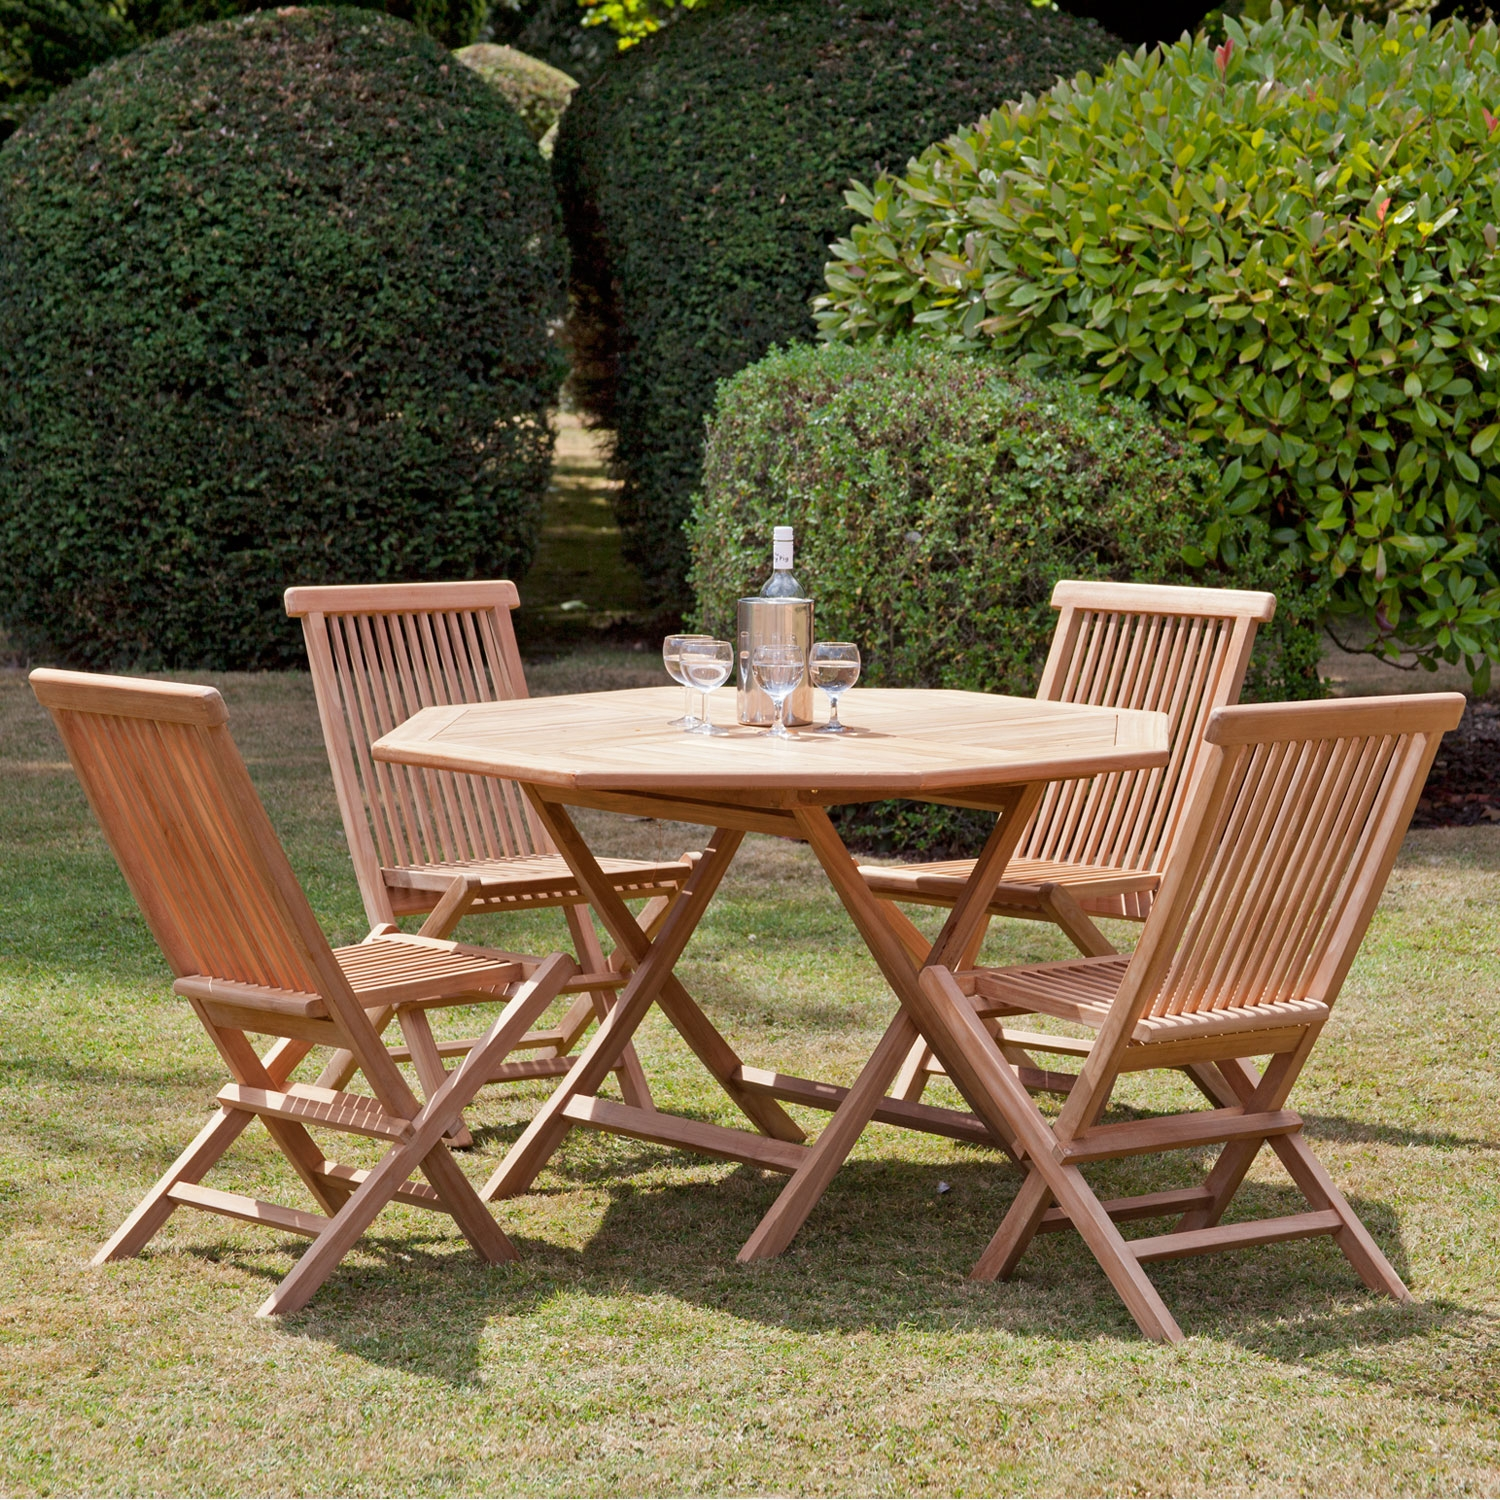 Image of Bali 4-Seat Octagonal Folding Dining Collection